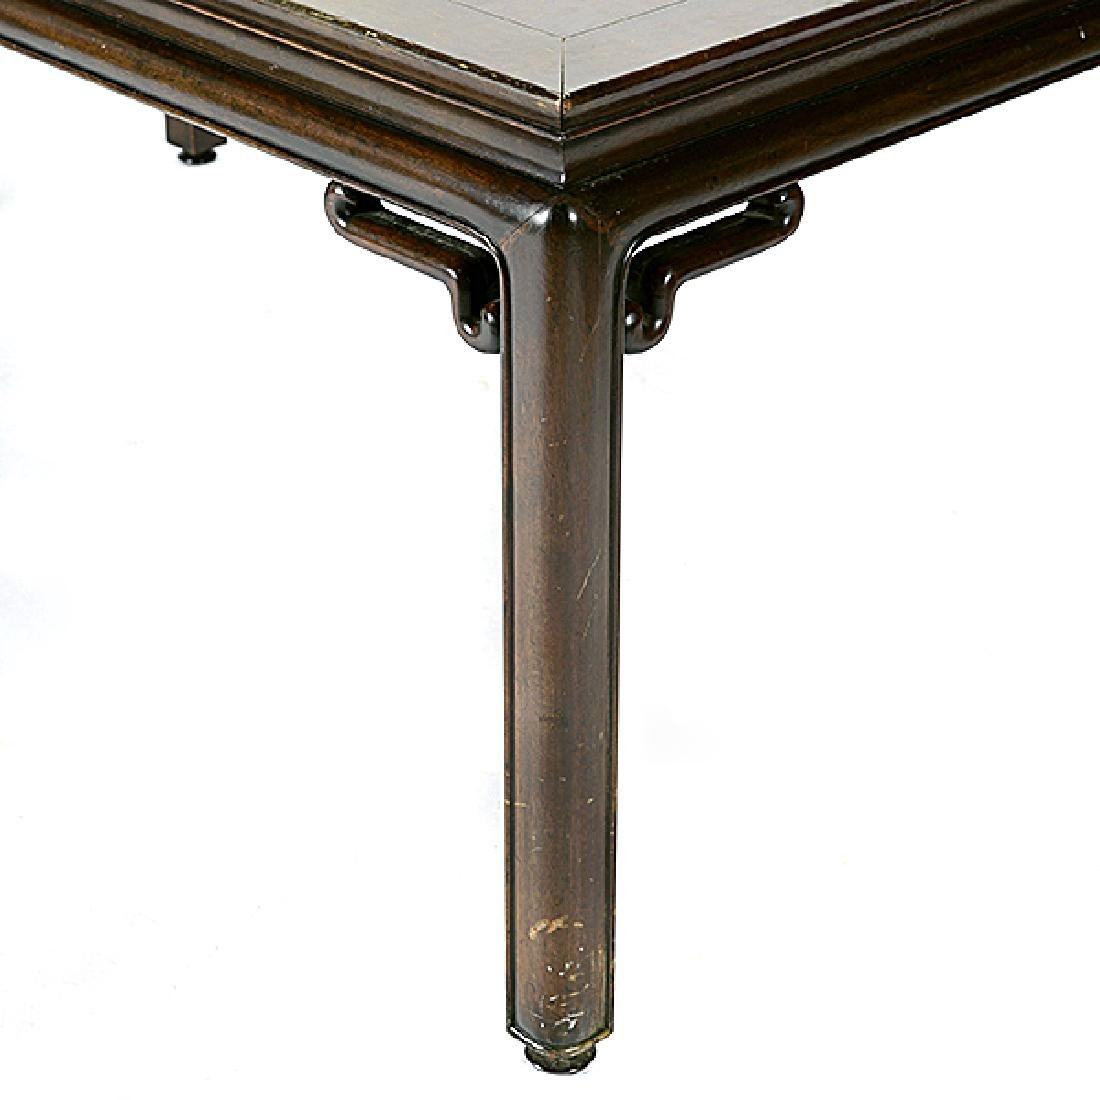 Baker Chinese Style Dining Table with Three Leaves - 2